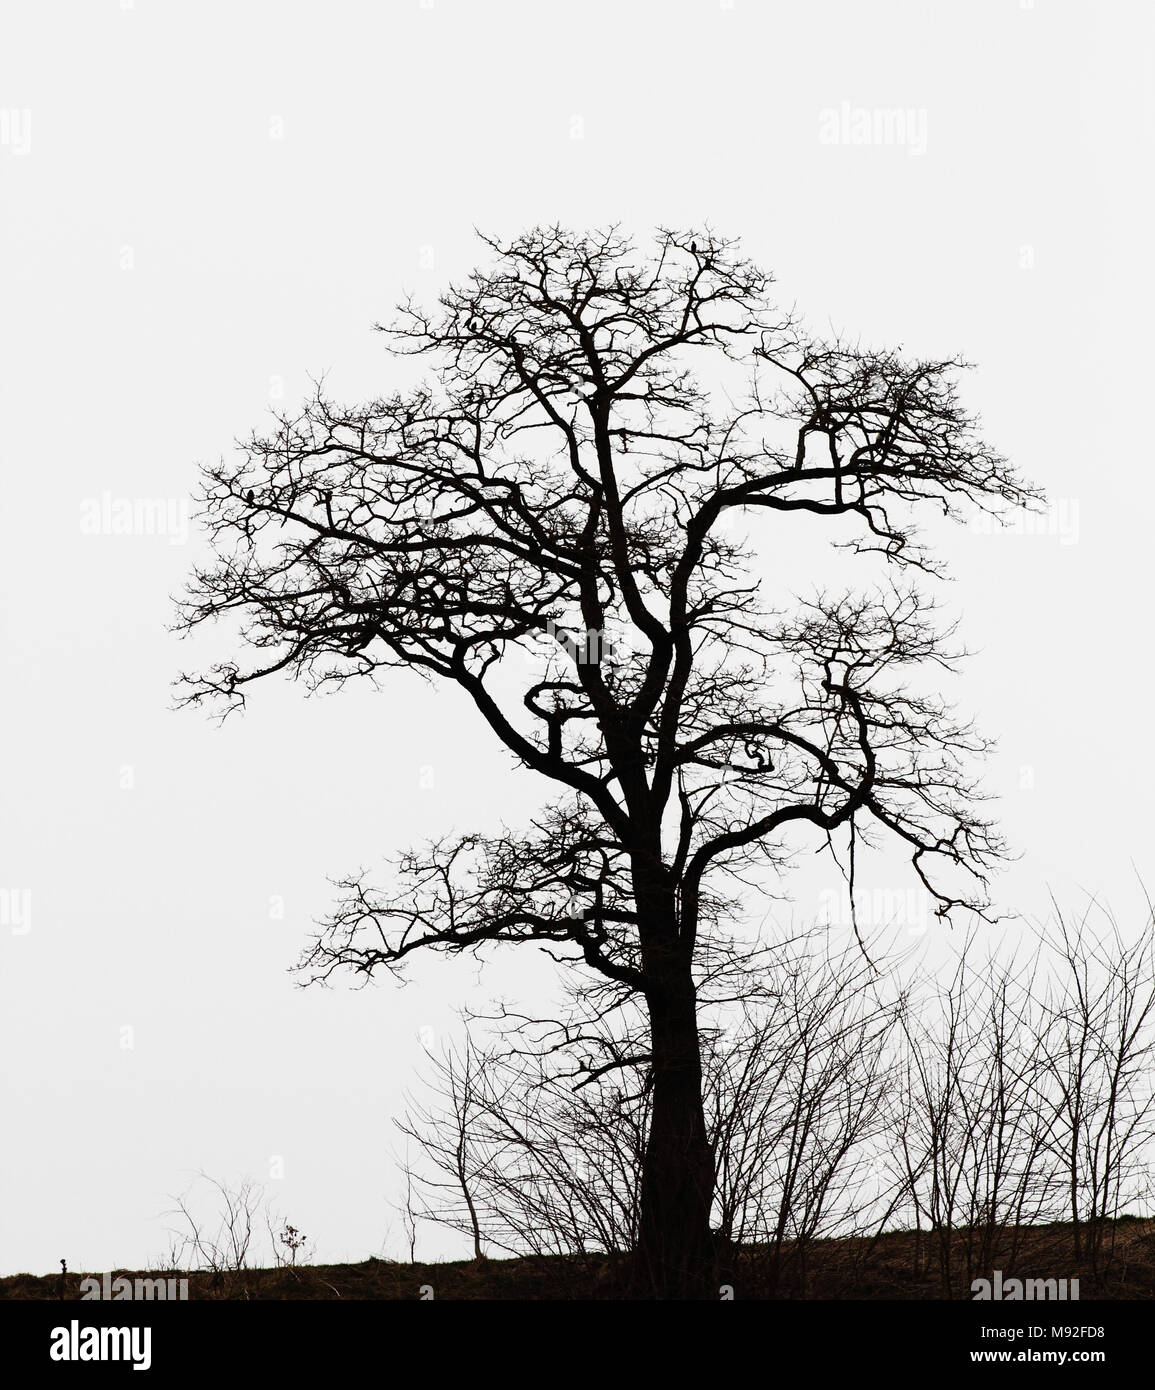 Robinia in winter - Stock Image